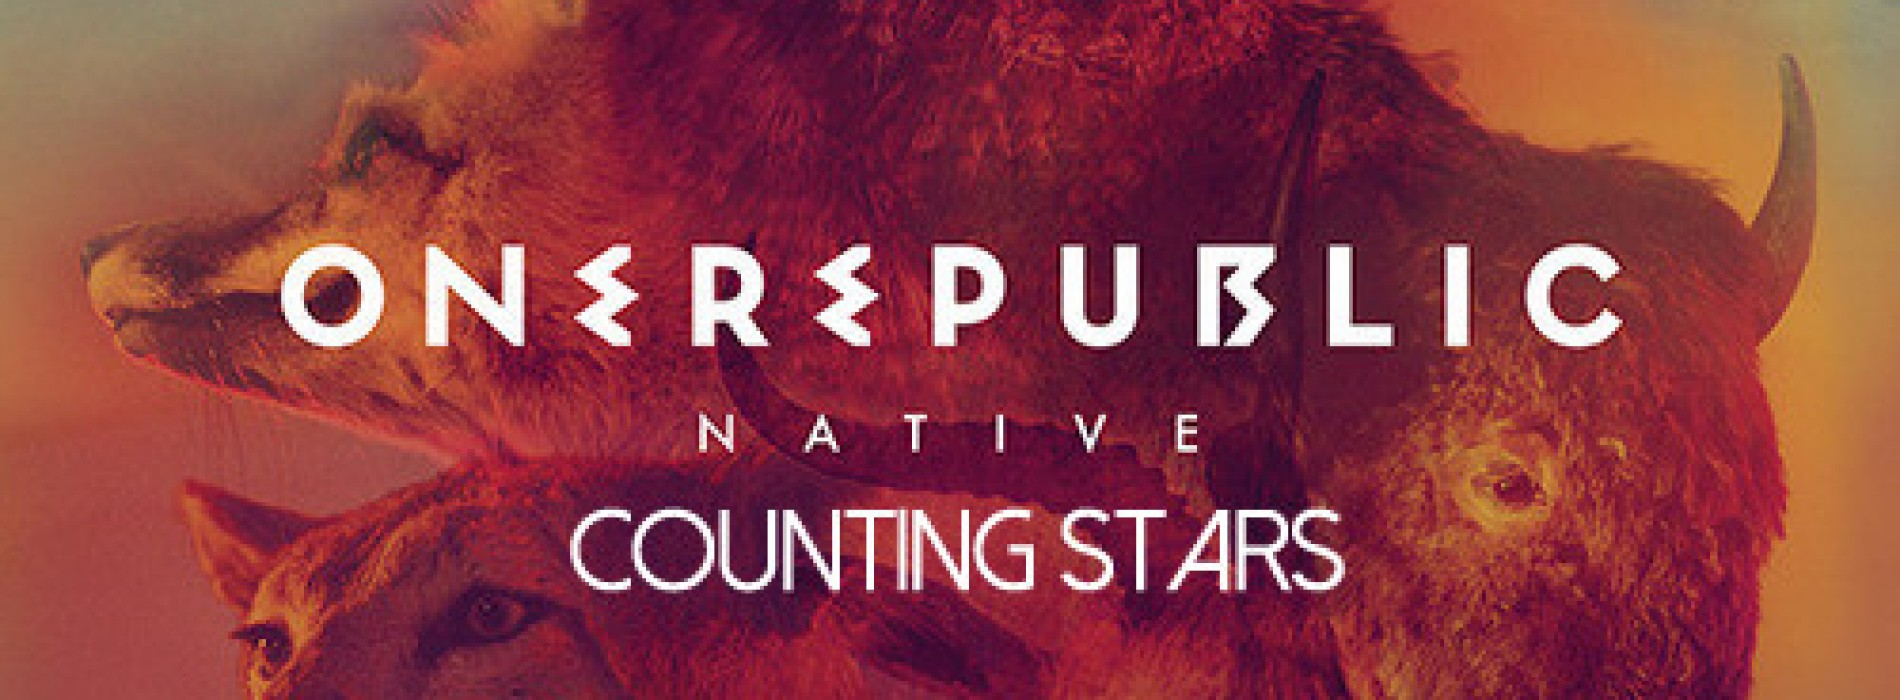 "OneRepublic's ""Counting Stars"" Just Got The Dropwizz Trap Treatment"